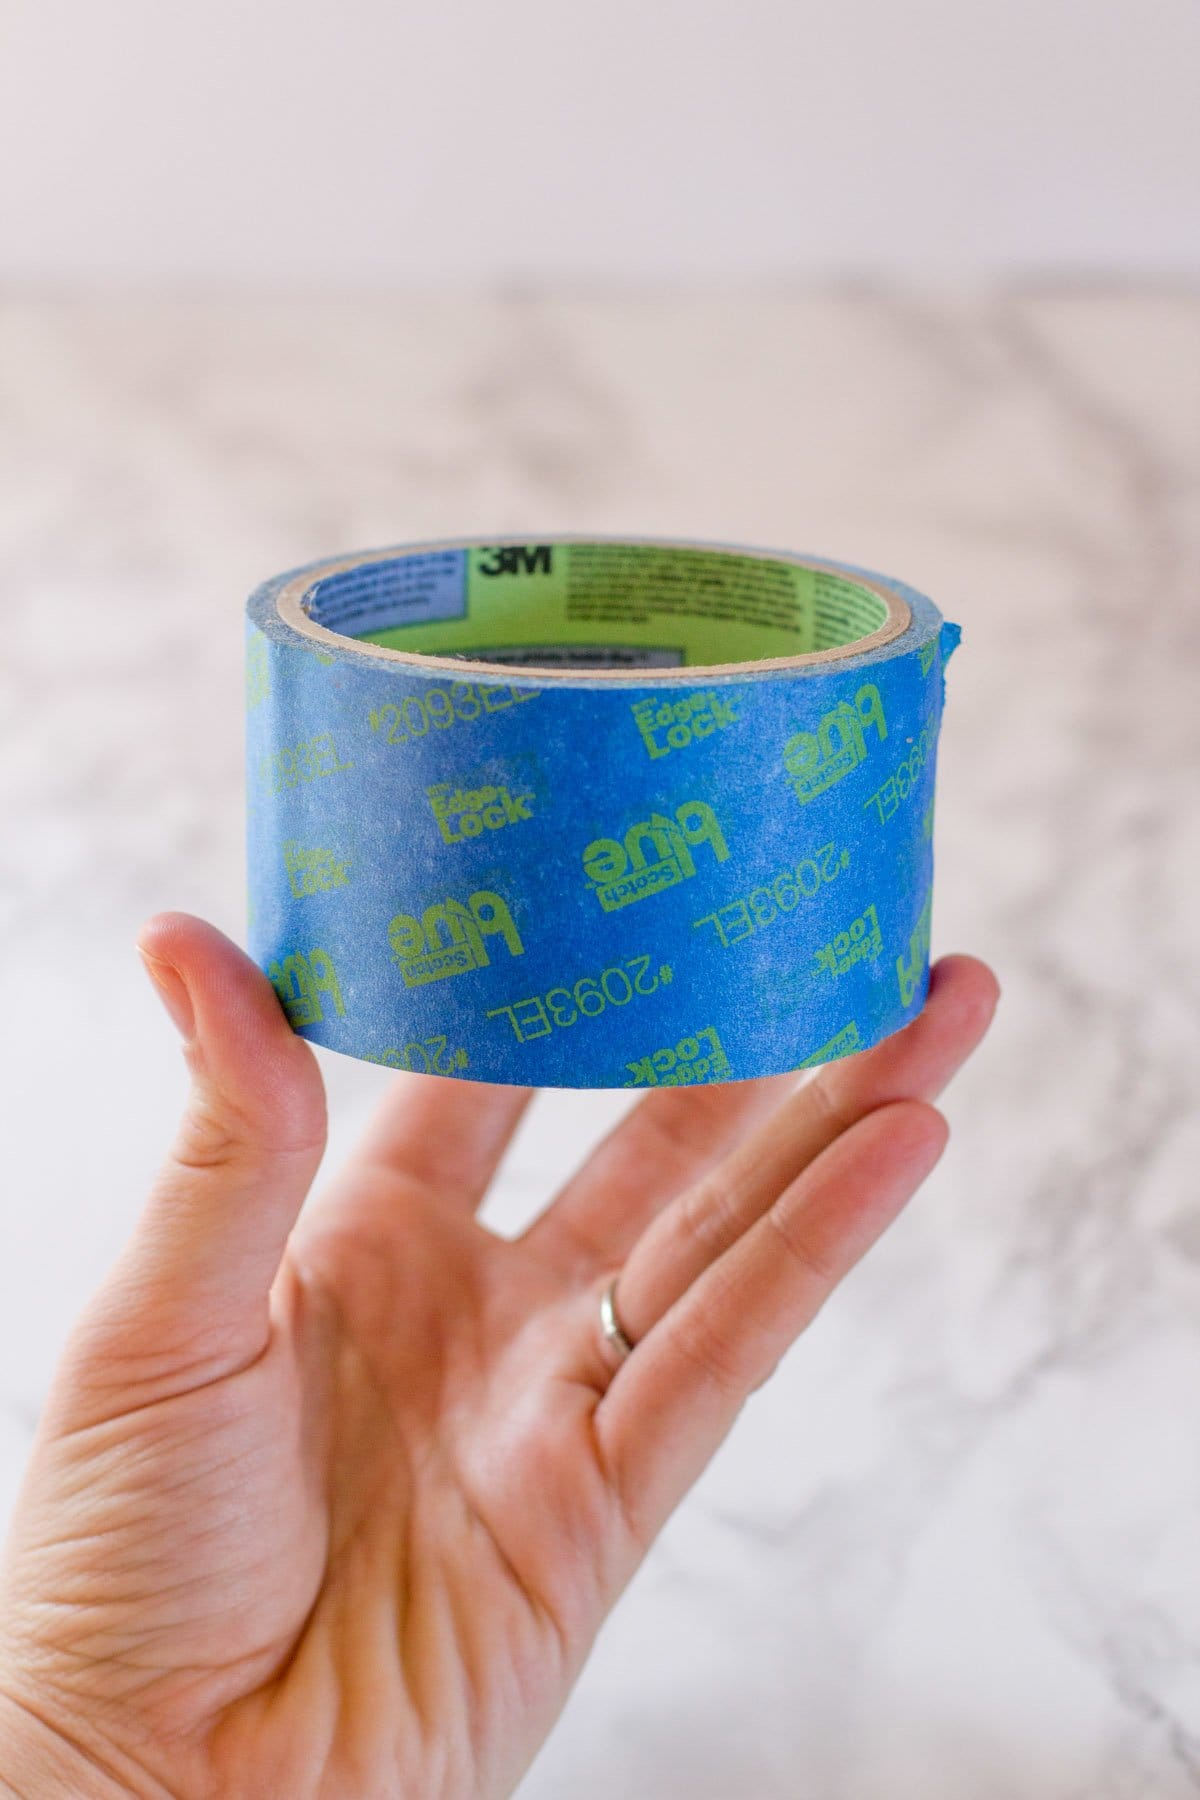 Hand holding up a roll of painter's tape